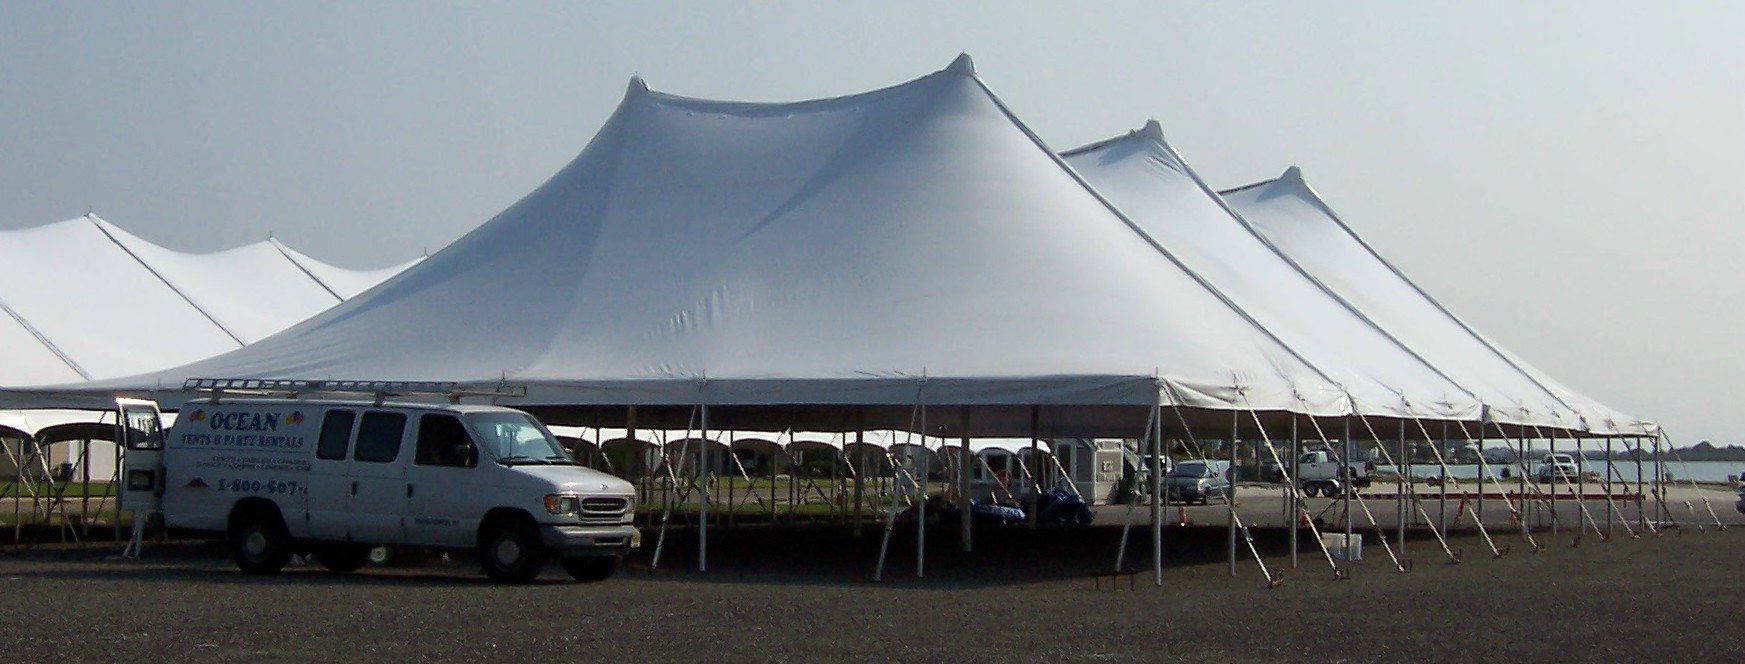 Categories 60u0027 Wide Pole Tent Pole Tents Tents. & 60u0027x90u0027 Pole Tent - Ocean Tents